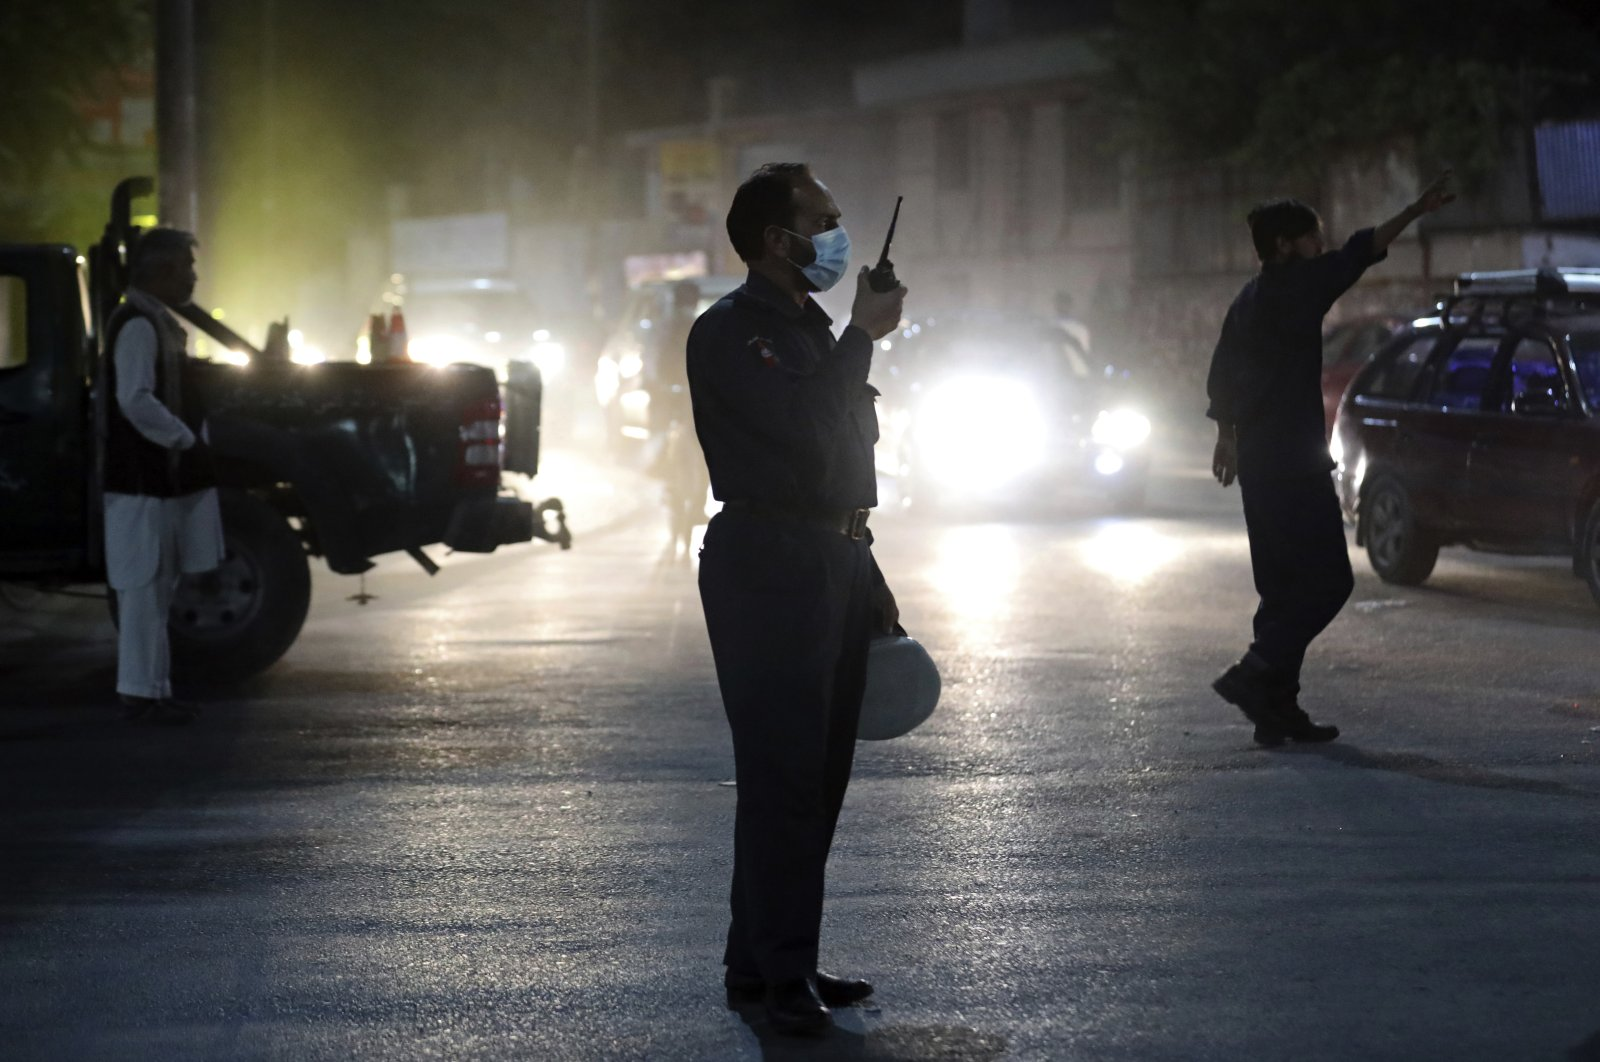 Afghan security personnel work at the site of a powerful explosion in Kabul, Afghanistan, Aug. 3, 2021. (AP Photo)